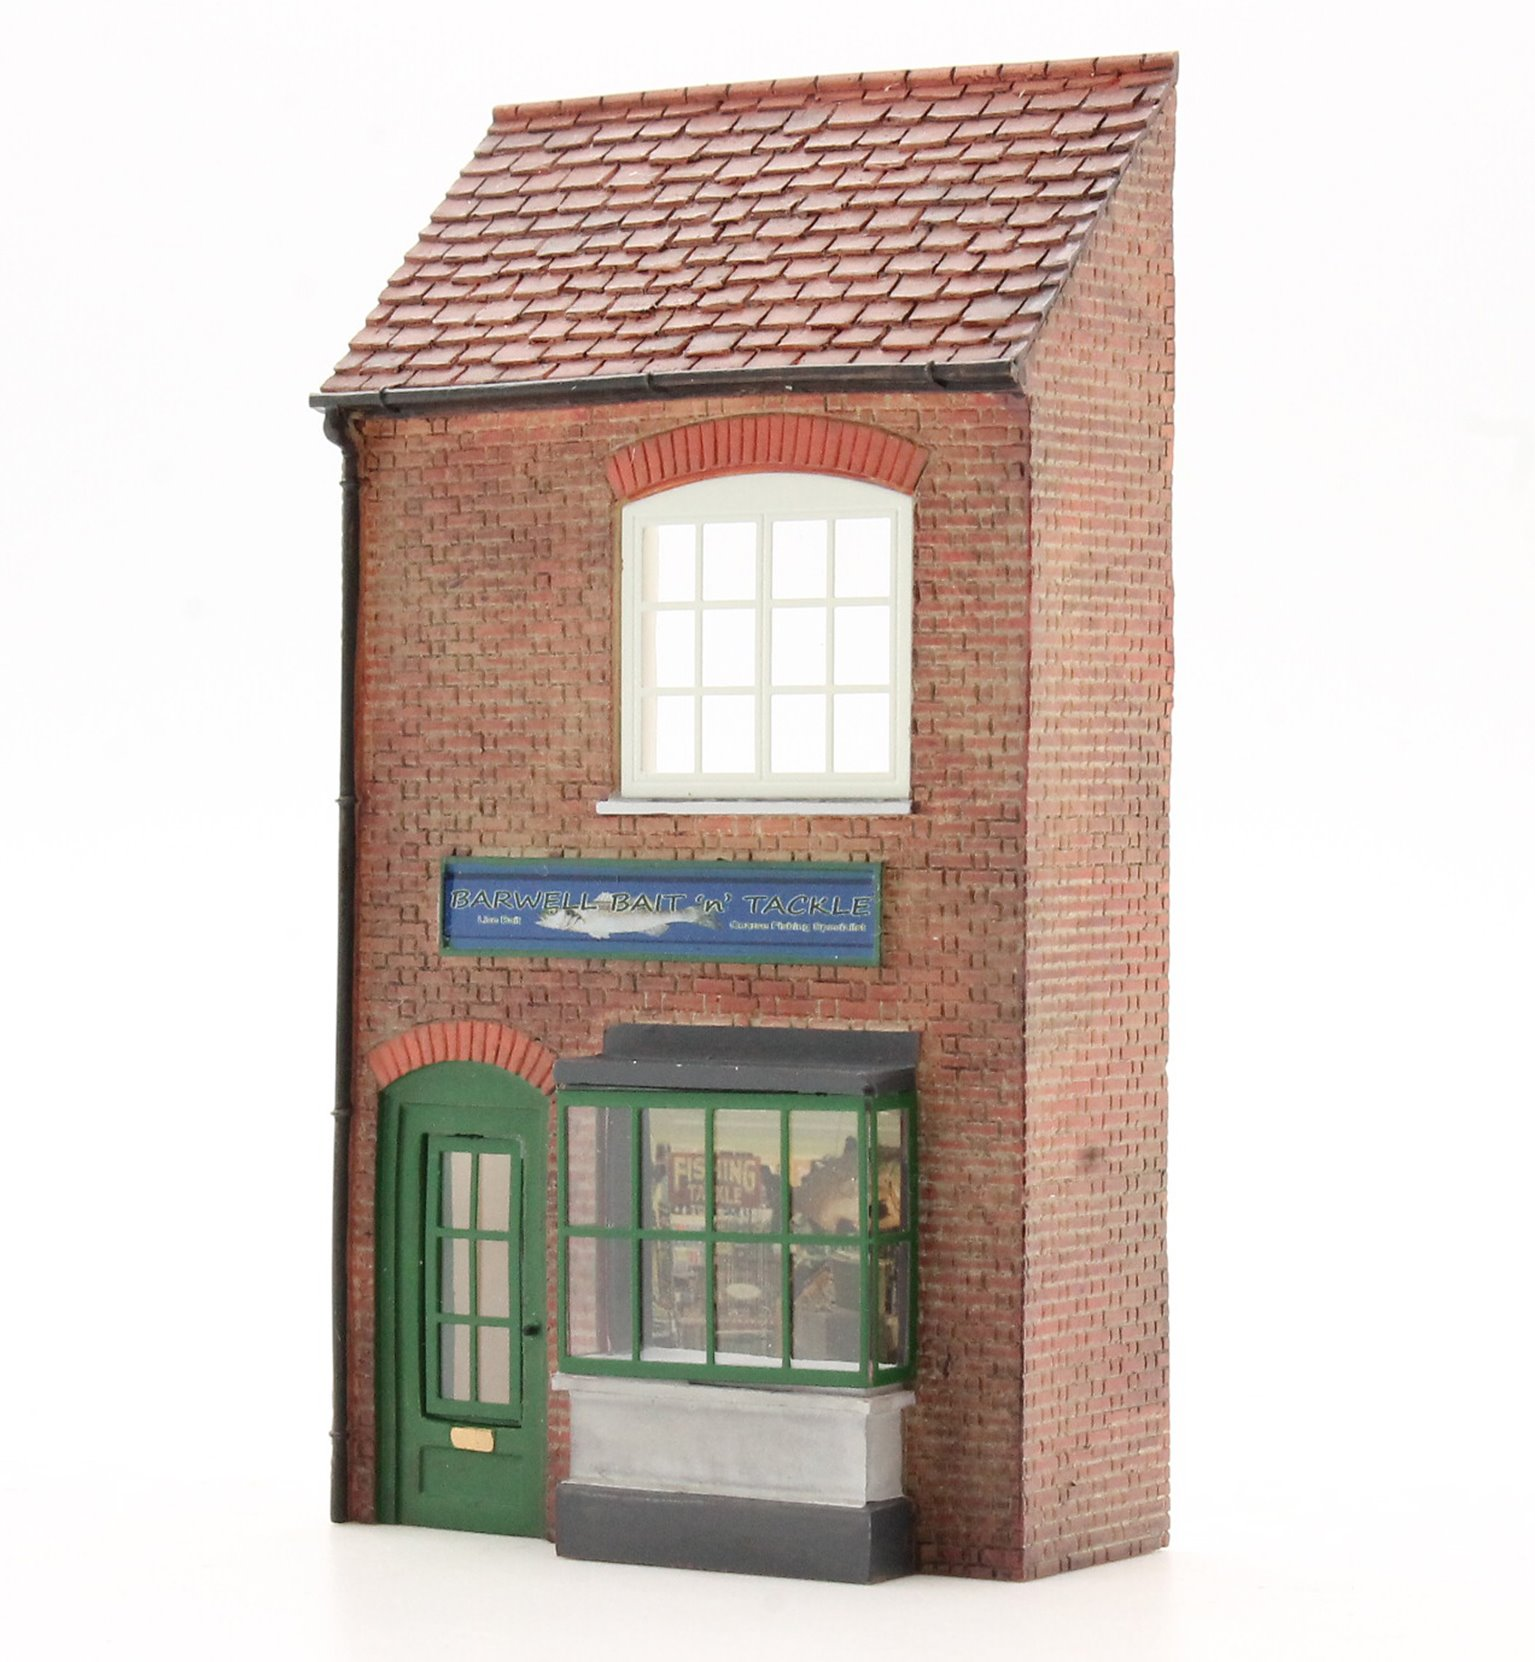 Low Relief Fishing Tackle Shop